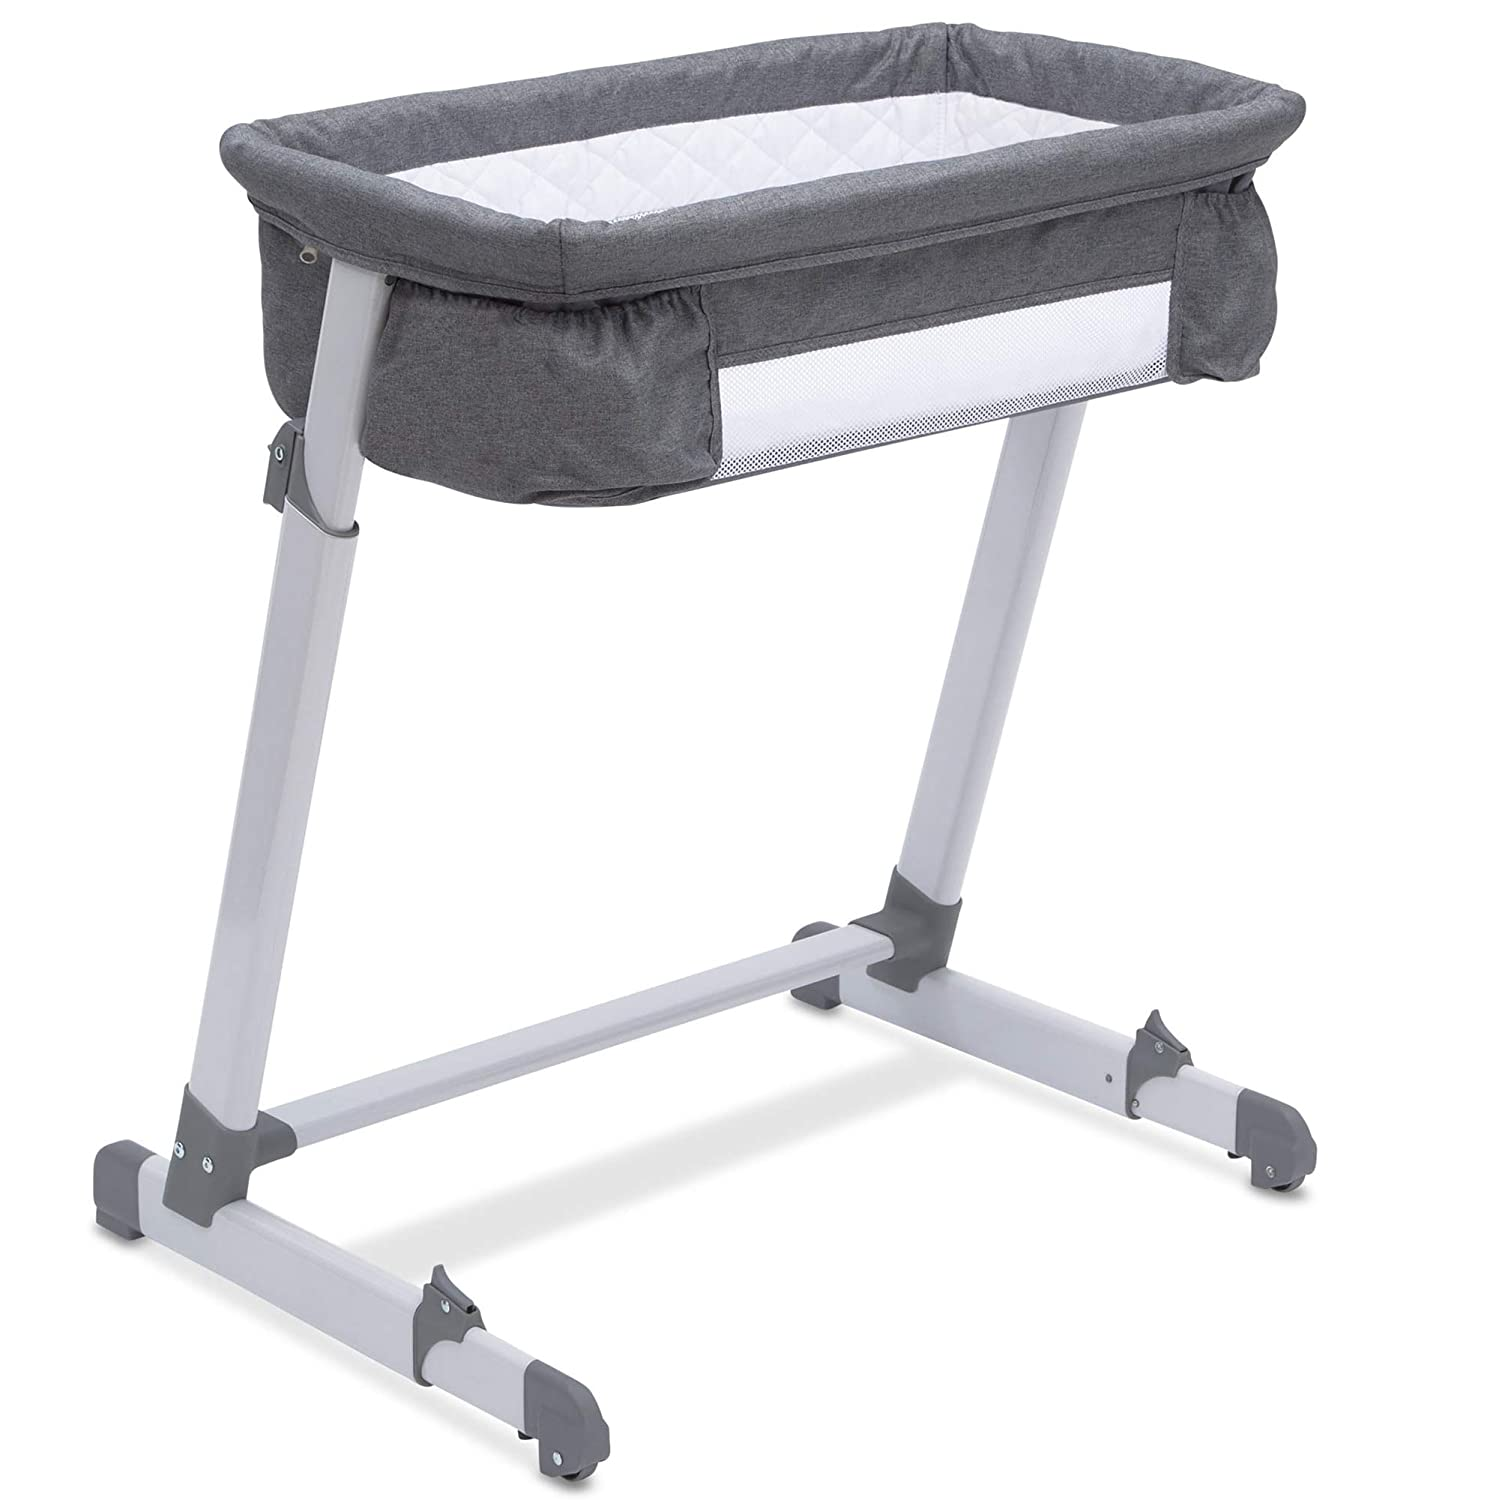 Beautyrest Deluxe By the Bed Bassinet, Grey Tweed Delta Enterprise Corp - PLA 25501-2012